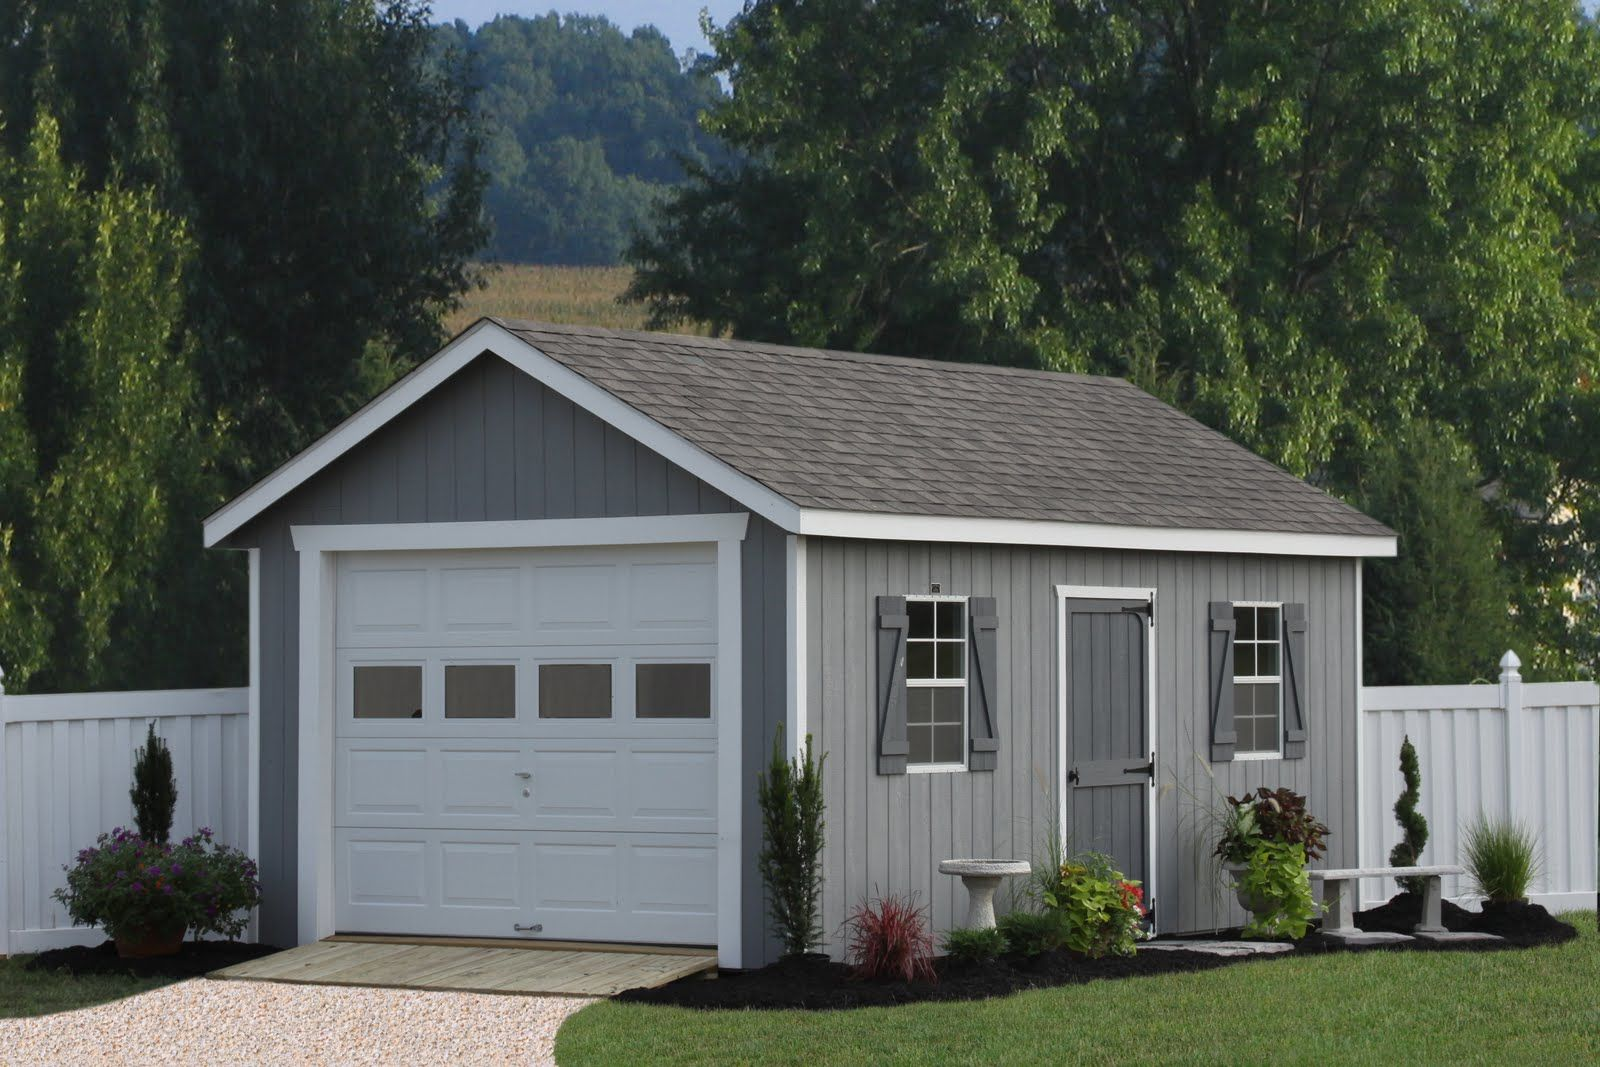 Add on garage plans 12x20 classic one car garage 4 car garage kit